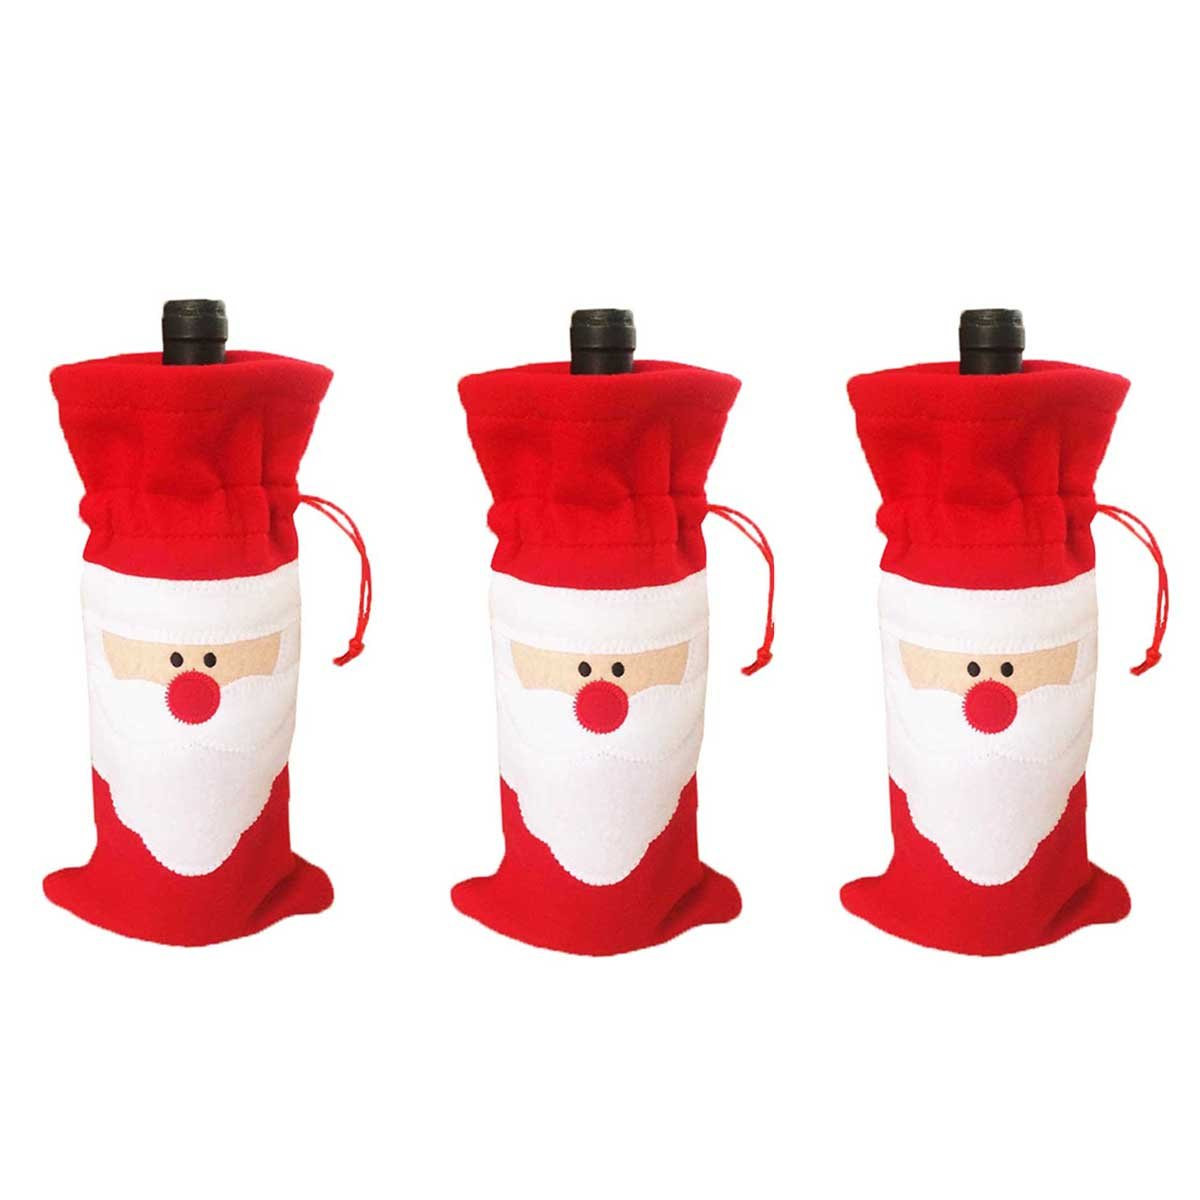 3 pcs Christmas Santa Claus Wine Bottle Decoration Bag Cover for Xmas Gift Dinner Party Table Decor